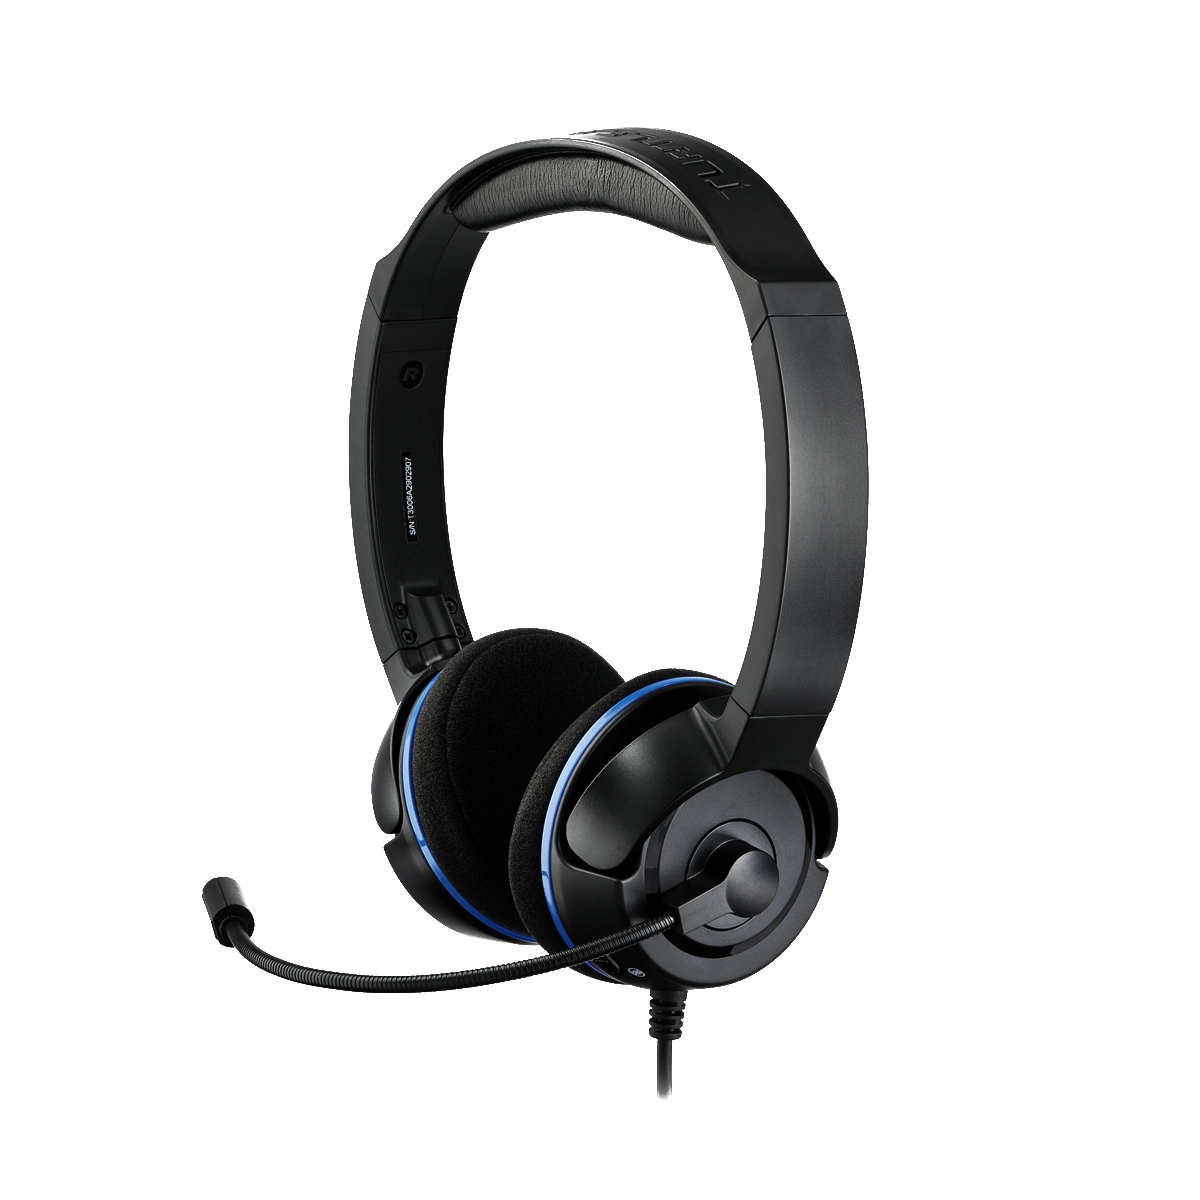 turtle beach ear force pla micro casque turtle beach sur ldlc. Black Bedroom Furniture Sets. Home Design Ideas